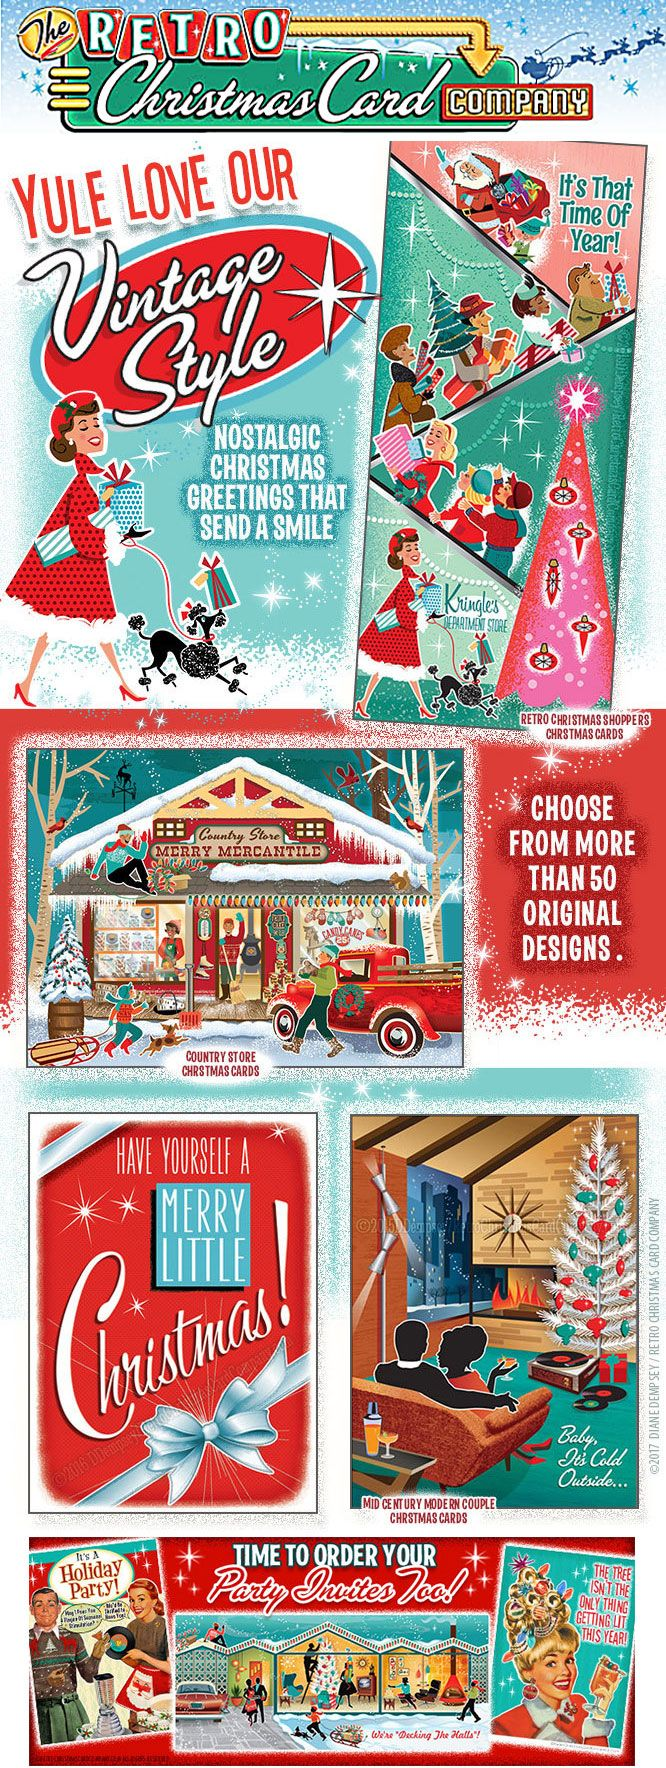 the retro christmas card company our collection of